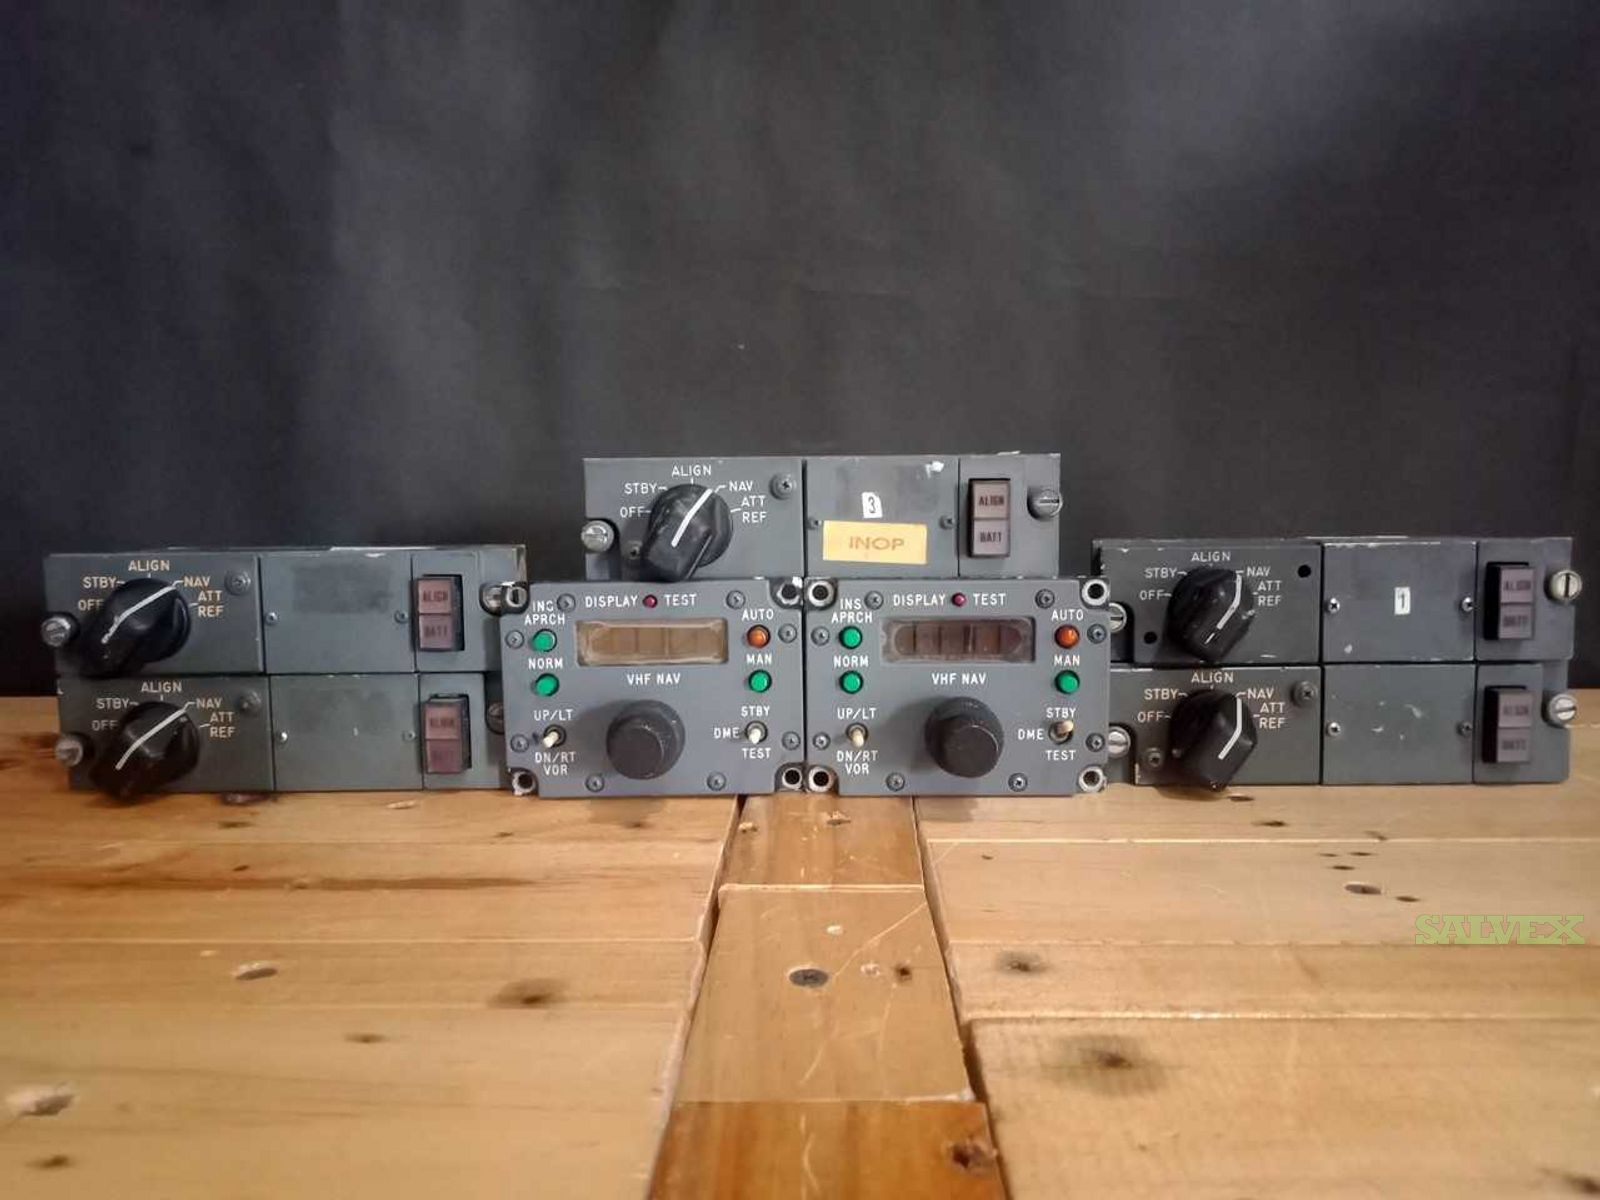 MSU and VHF Nav Control Panels - for Boeing 747 (7 Units)